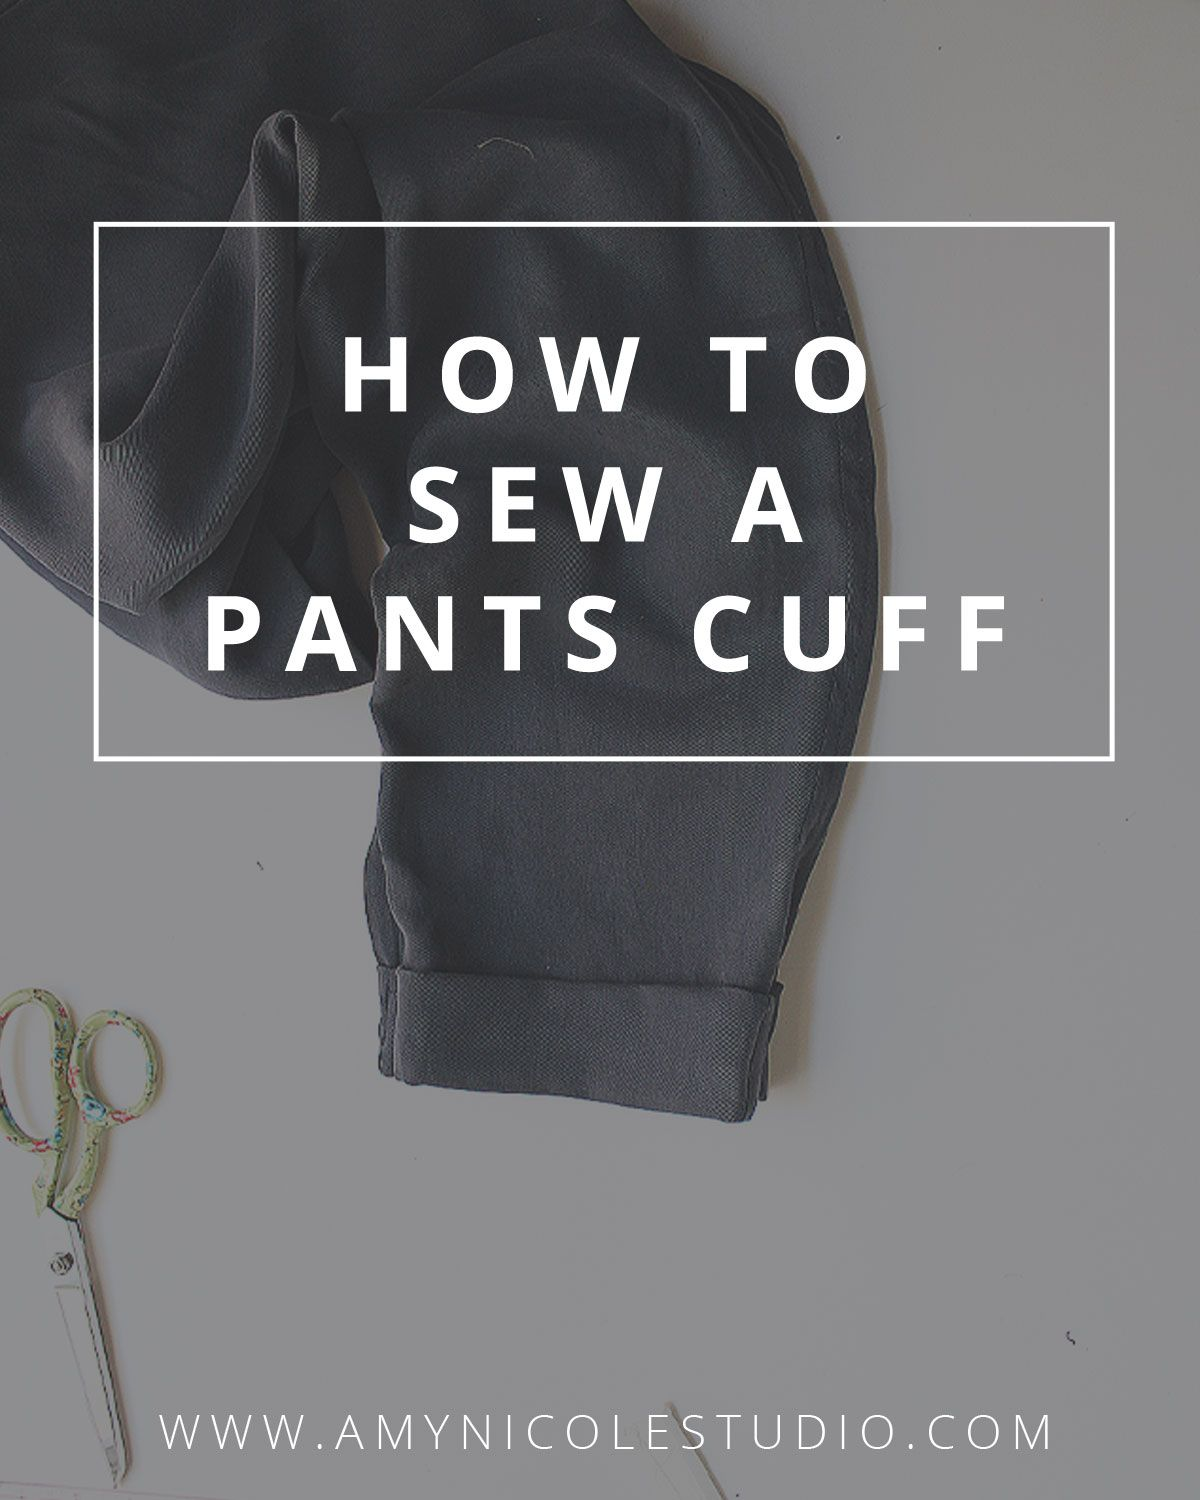 How To Hem Pants With A Cuff How To Sew A Permanent Cuff Pants Hem Amy Nicole Studio Sewing Pants Cuffed Pants How To Hem Pants